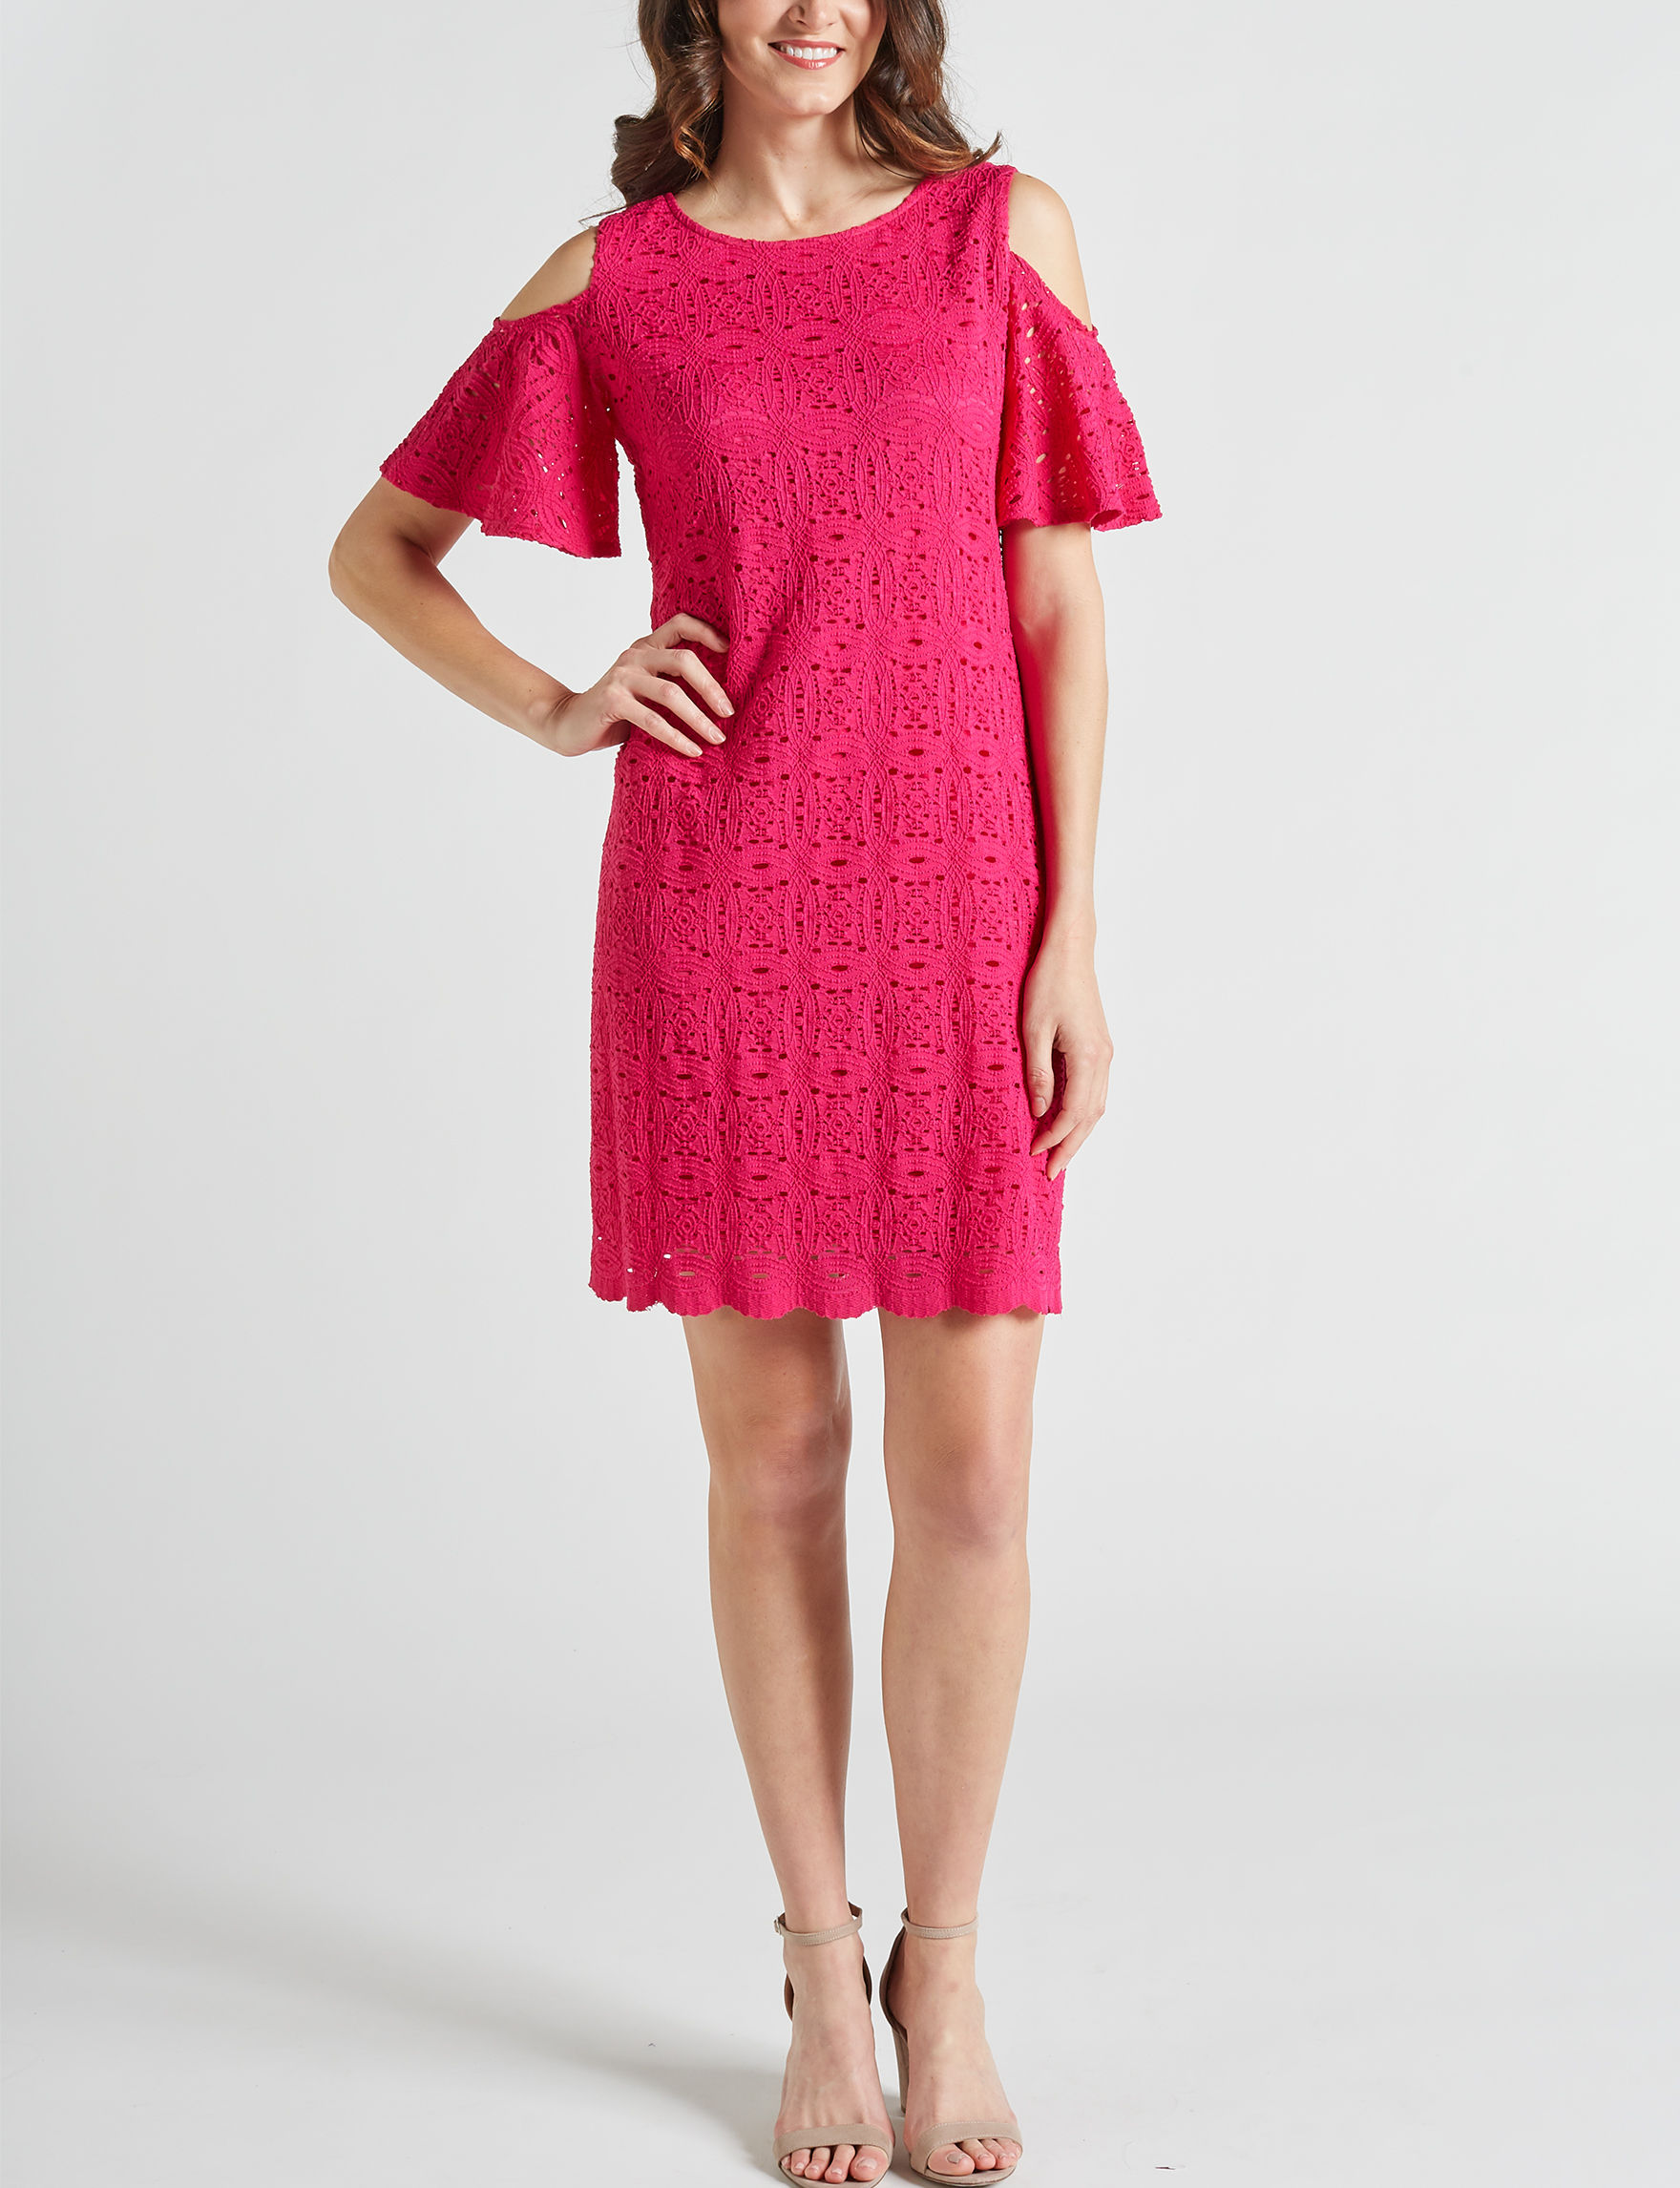 Ronni Nicole Medium Pink Everyday & Casual Shift Dresses